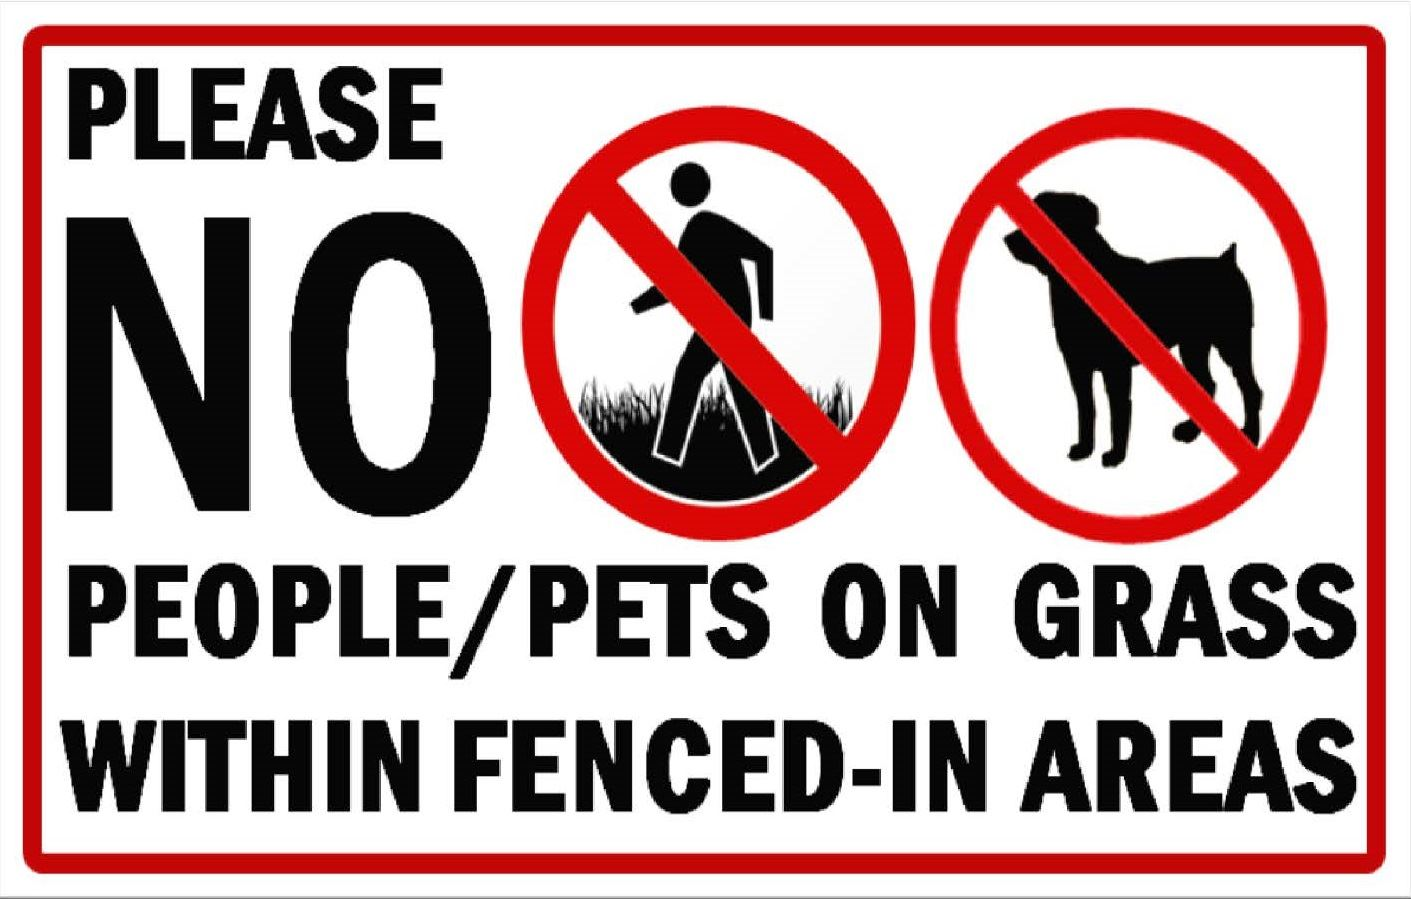 Please No People or Pets on Grass Within Fenced-in Areas